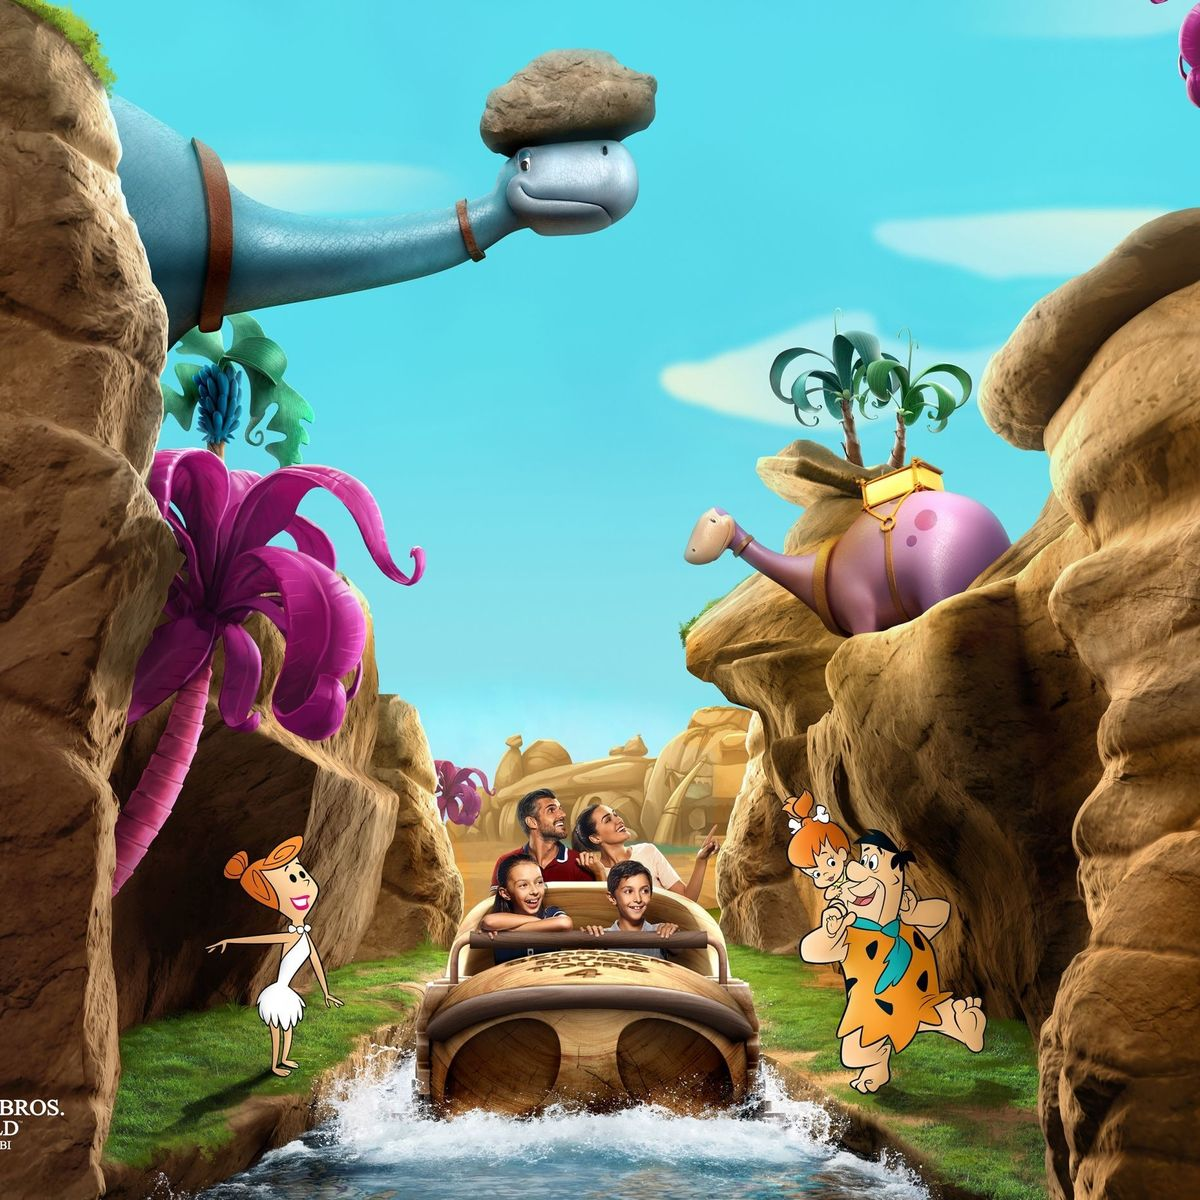 Flinstones' Bedrock River Adventure